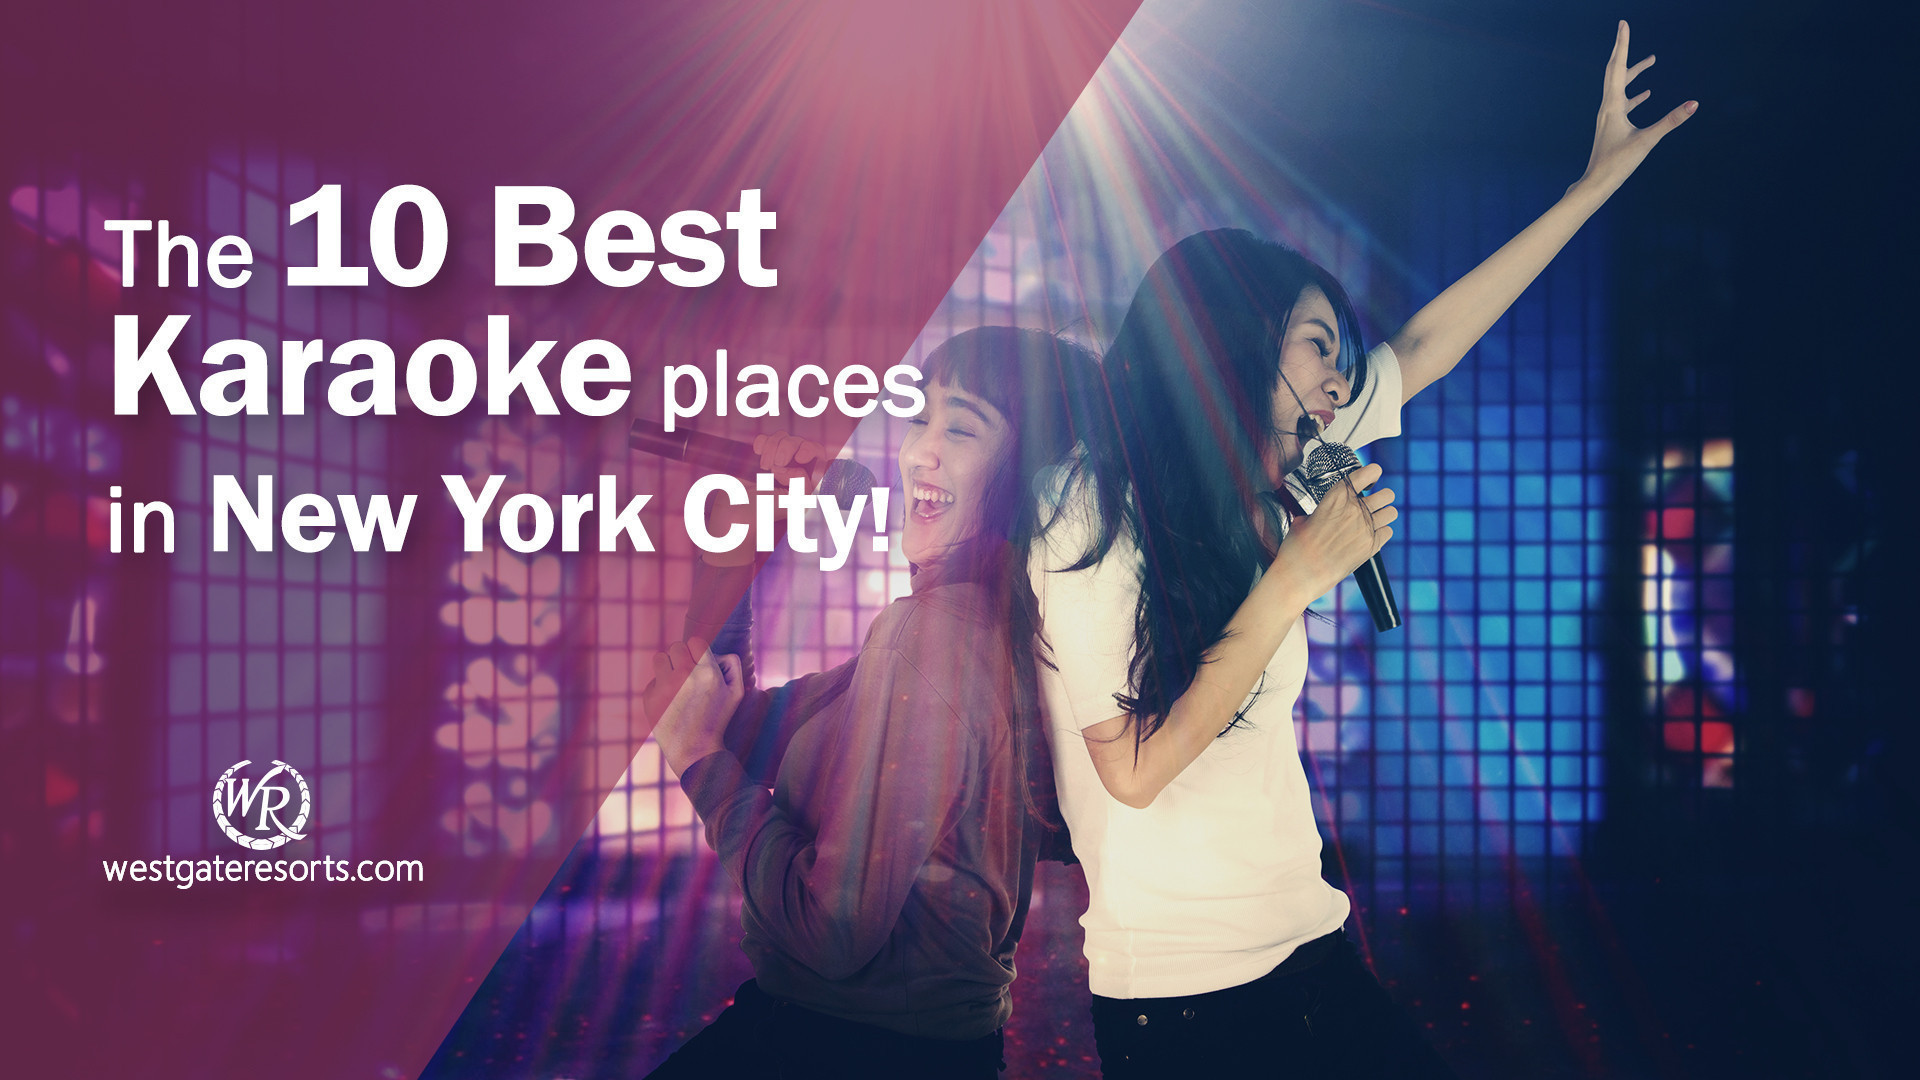 The 10 Best Karaoke Places in NYC! | Karaoke Lounges New York | Westgate Resorts